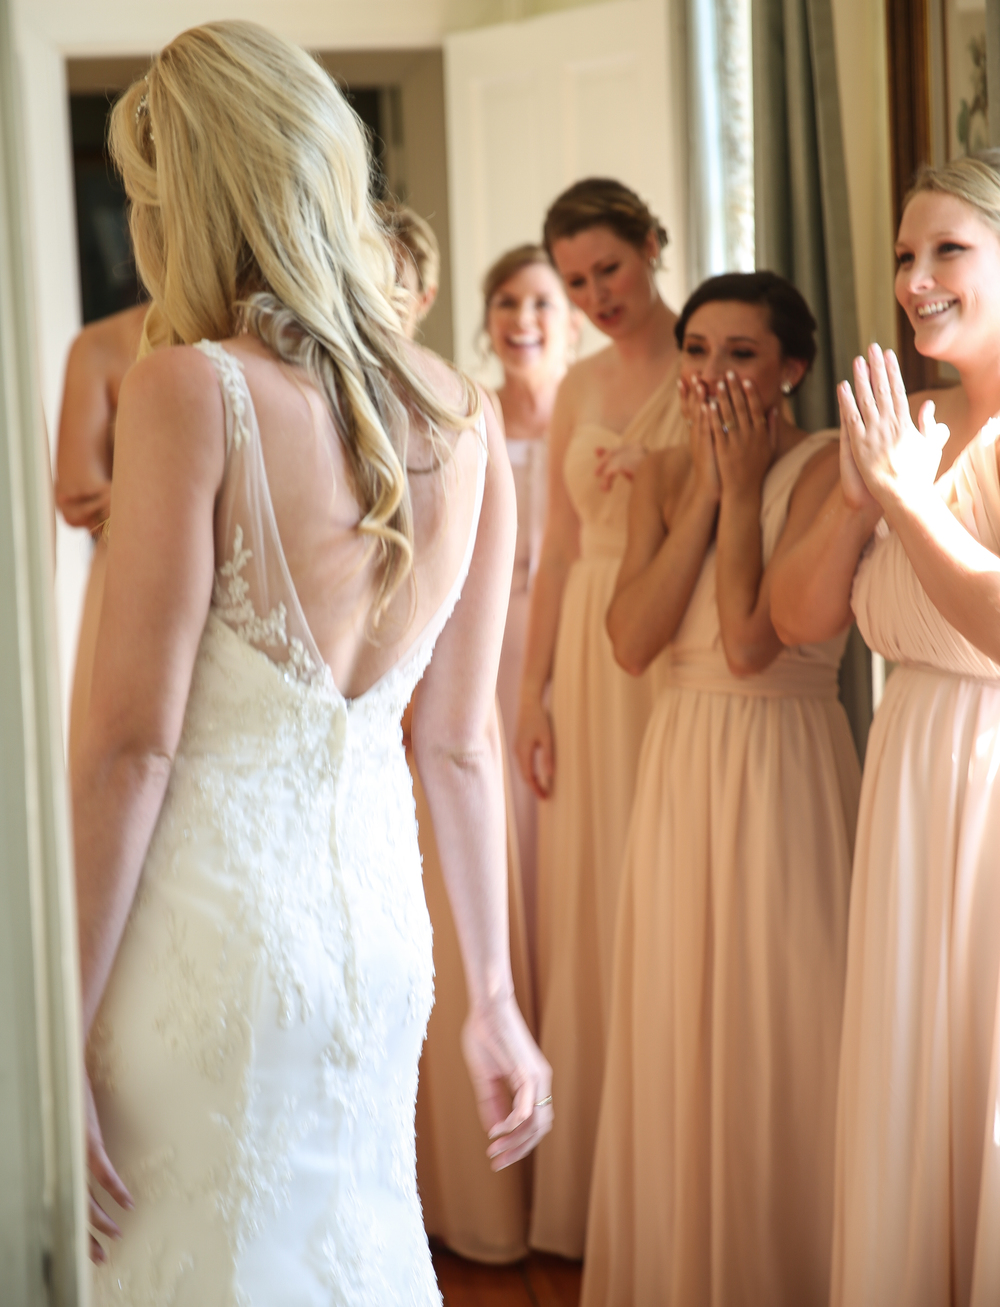 Lace House wedding ceremony by Jolie Connor Photography